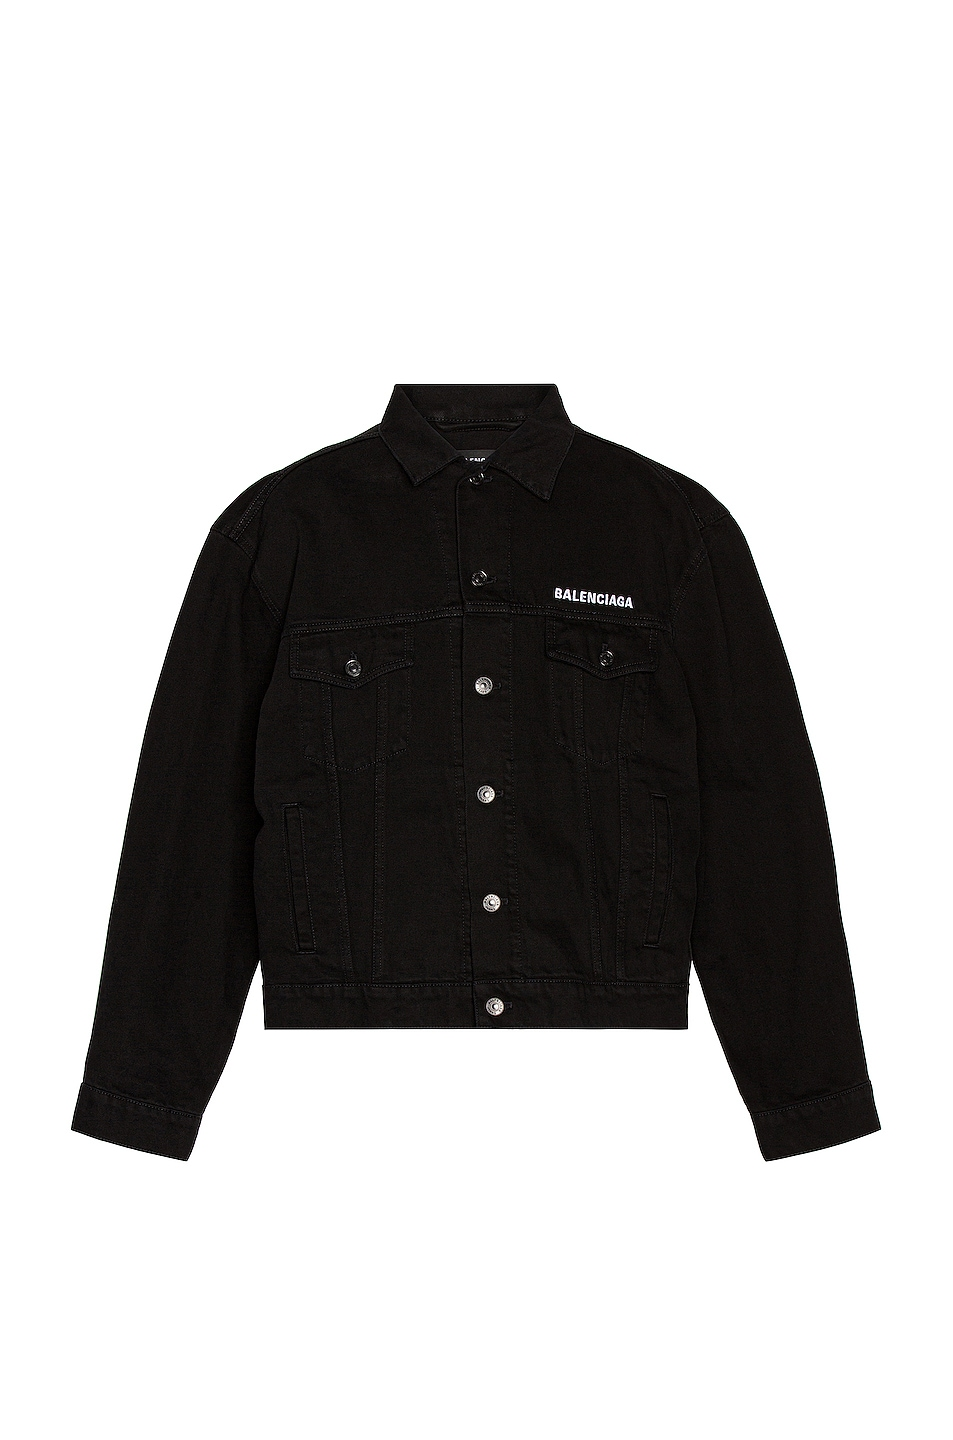 Image 1 of Balenciaga Large Fit Jacket in Pitch Black